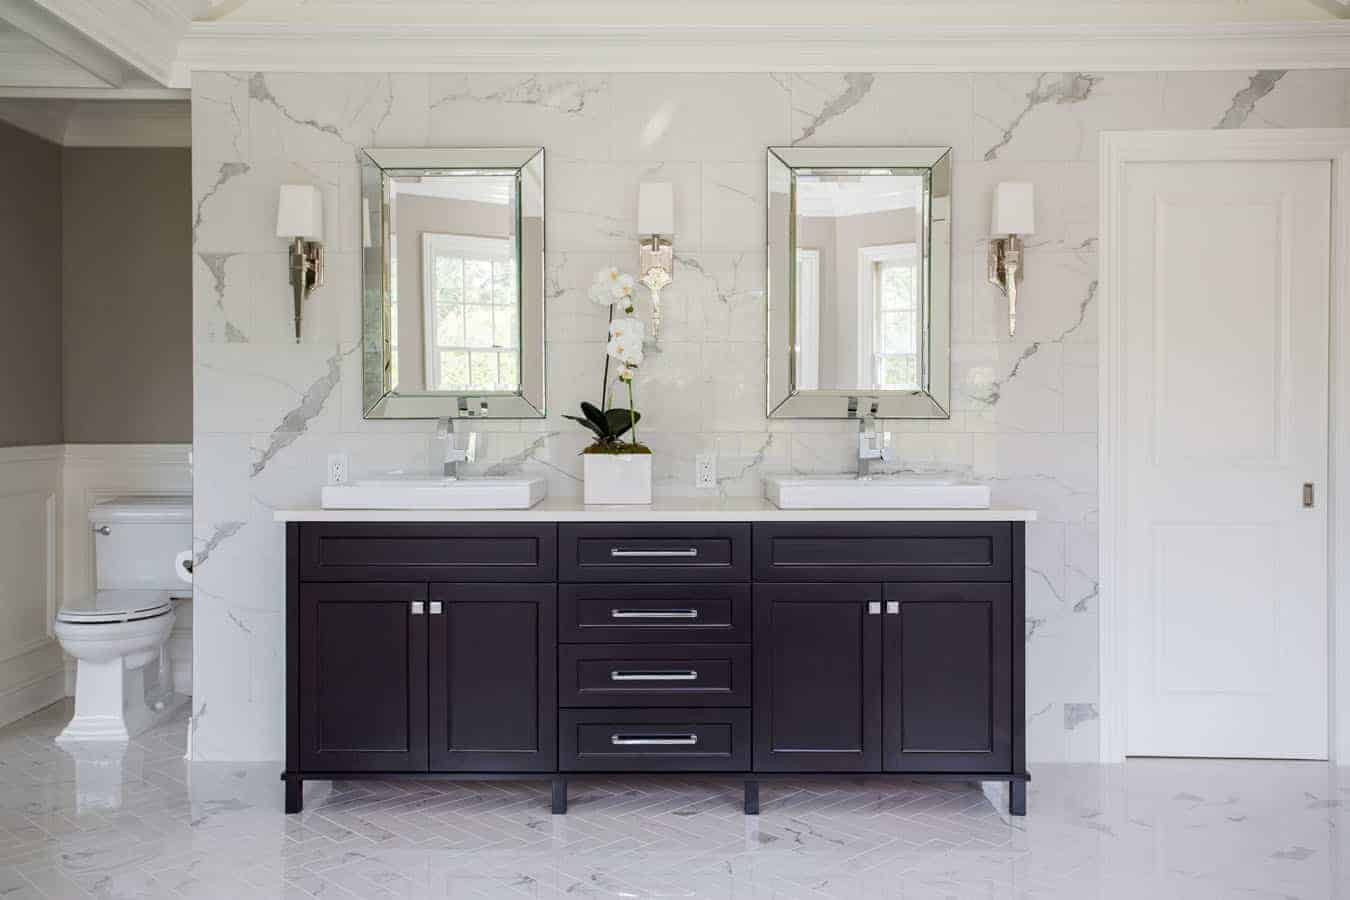 Old Brookville Bathroom remodel interior design